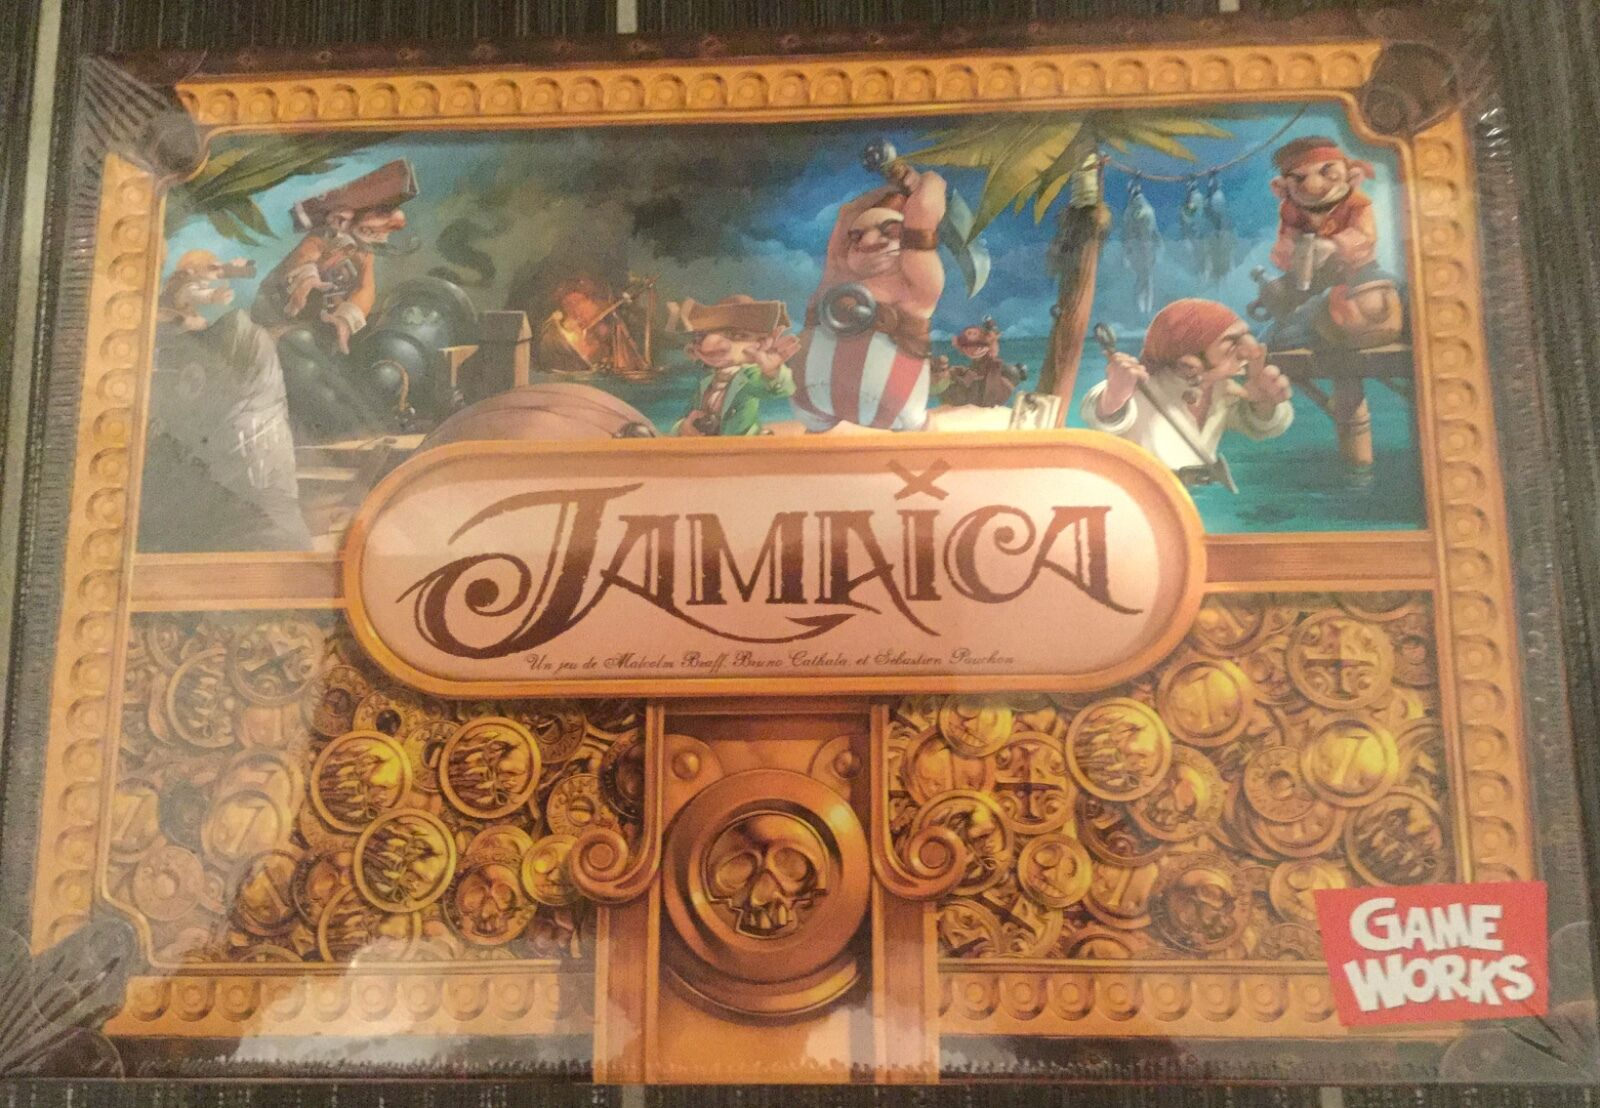 Game Works  Jamaica board game  shrink wrapped. Asmodee